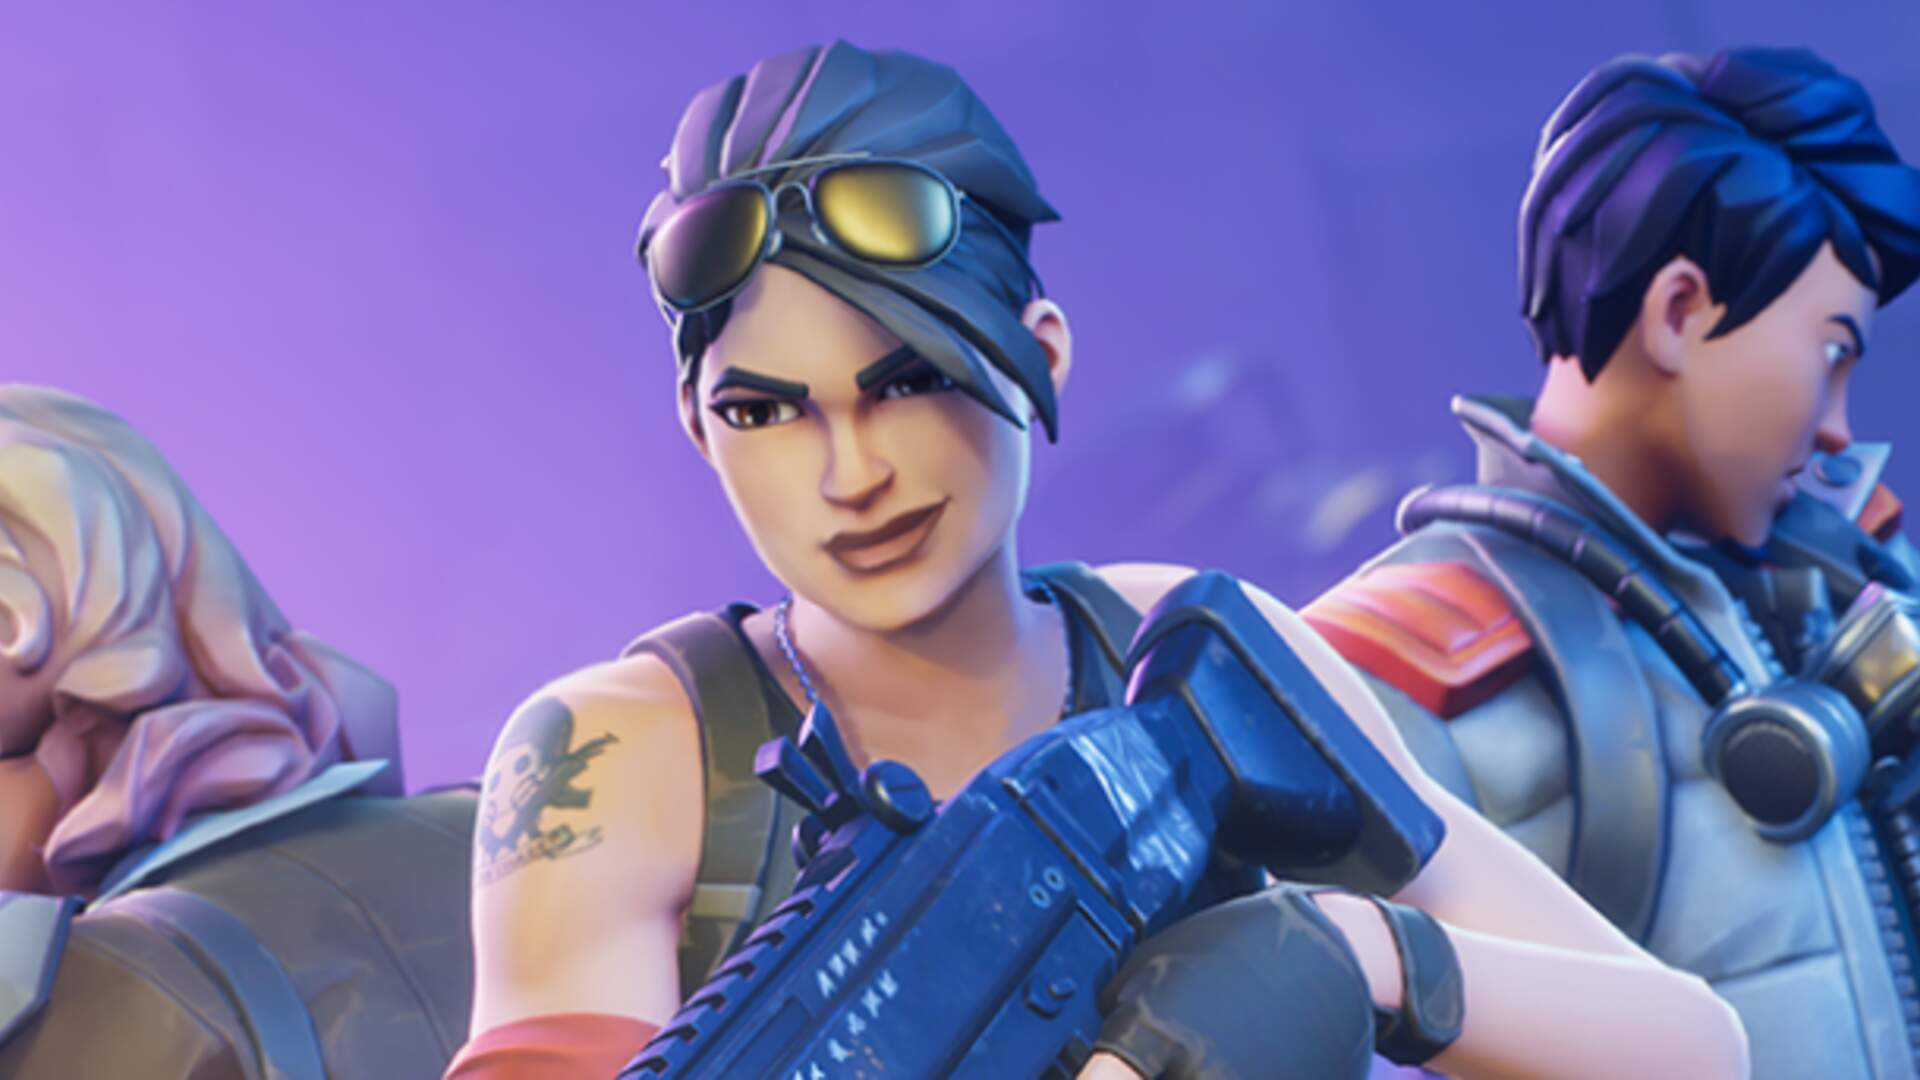 Fortnite Save the World V3.5 Dev Update Gives Details About Weapon Rerolls and Player Reporting